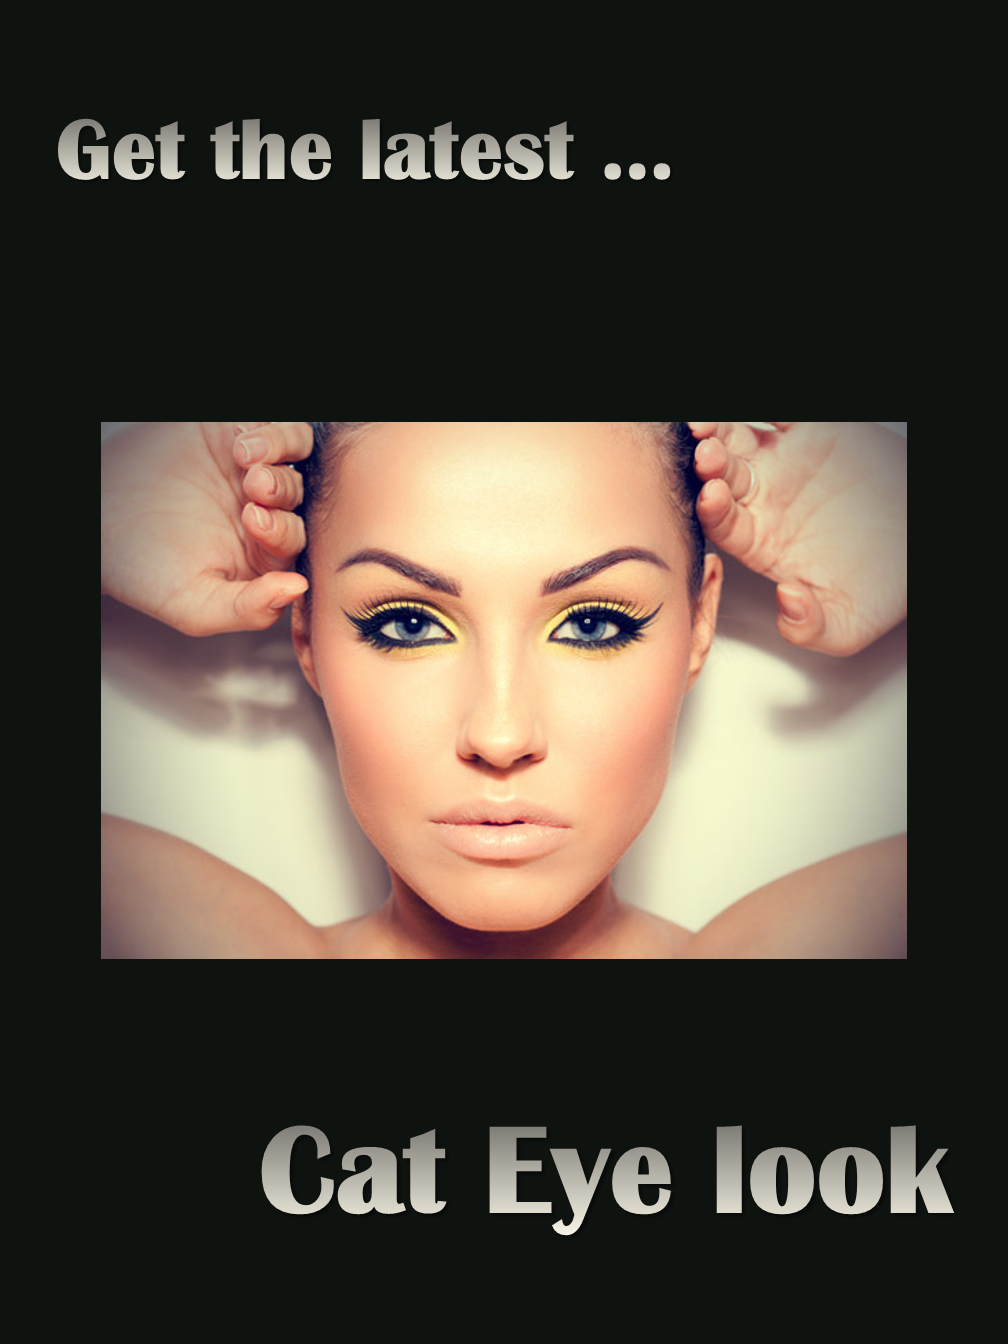 Cat Eye Looks - Make up